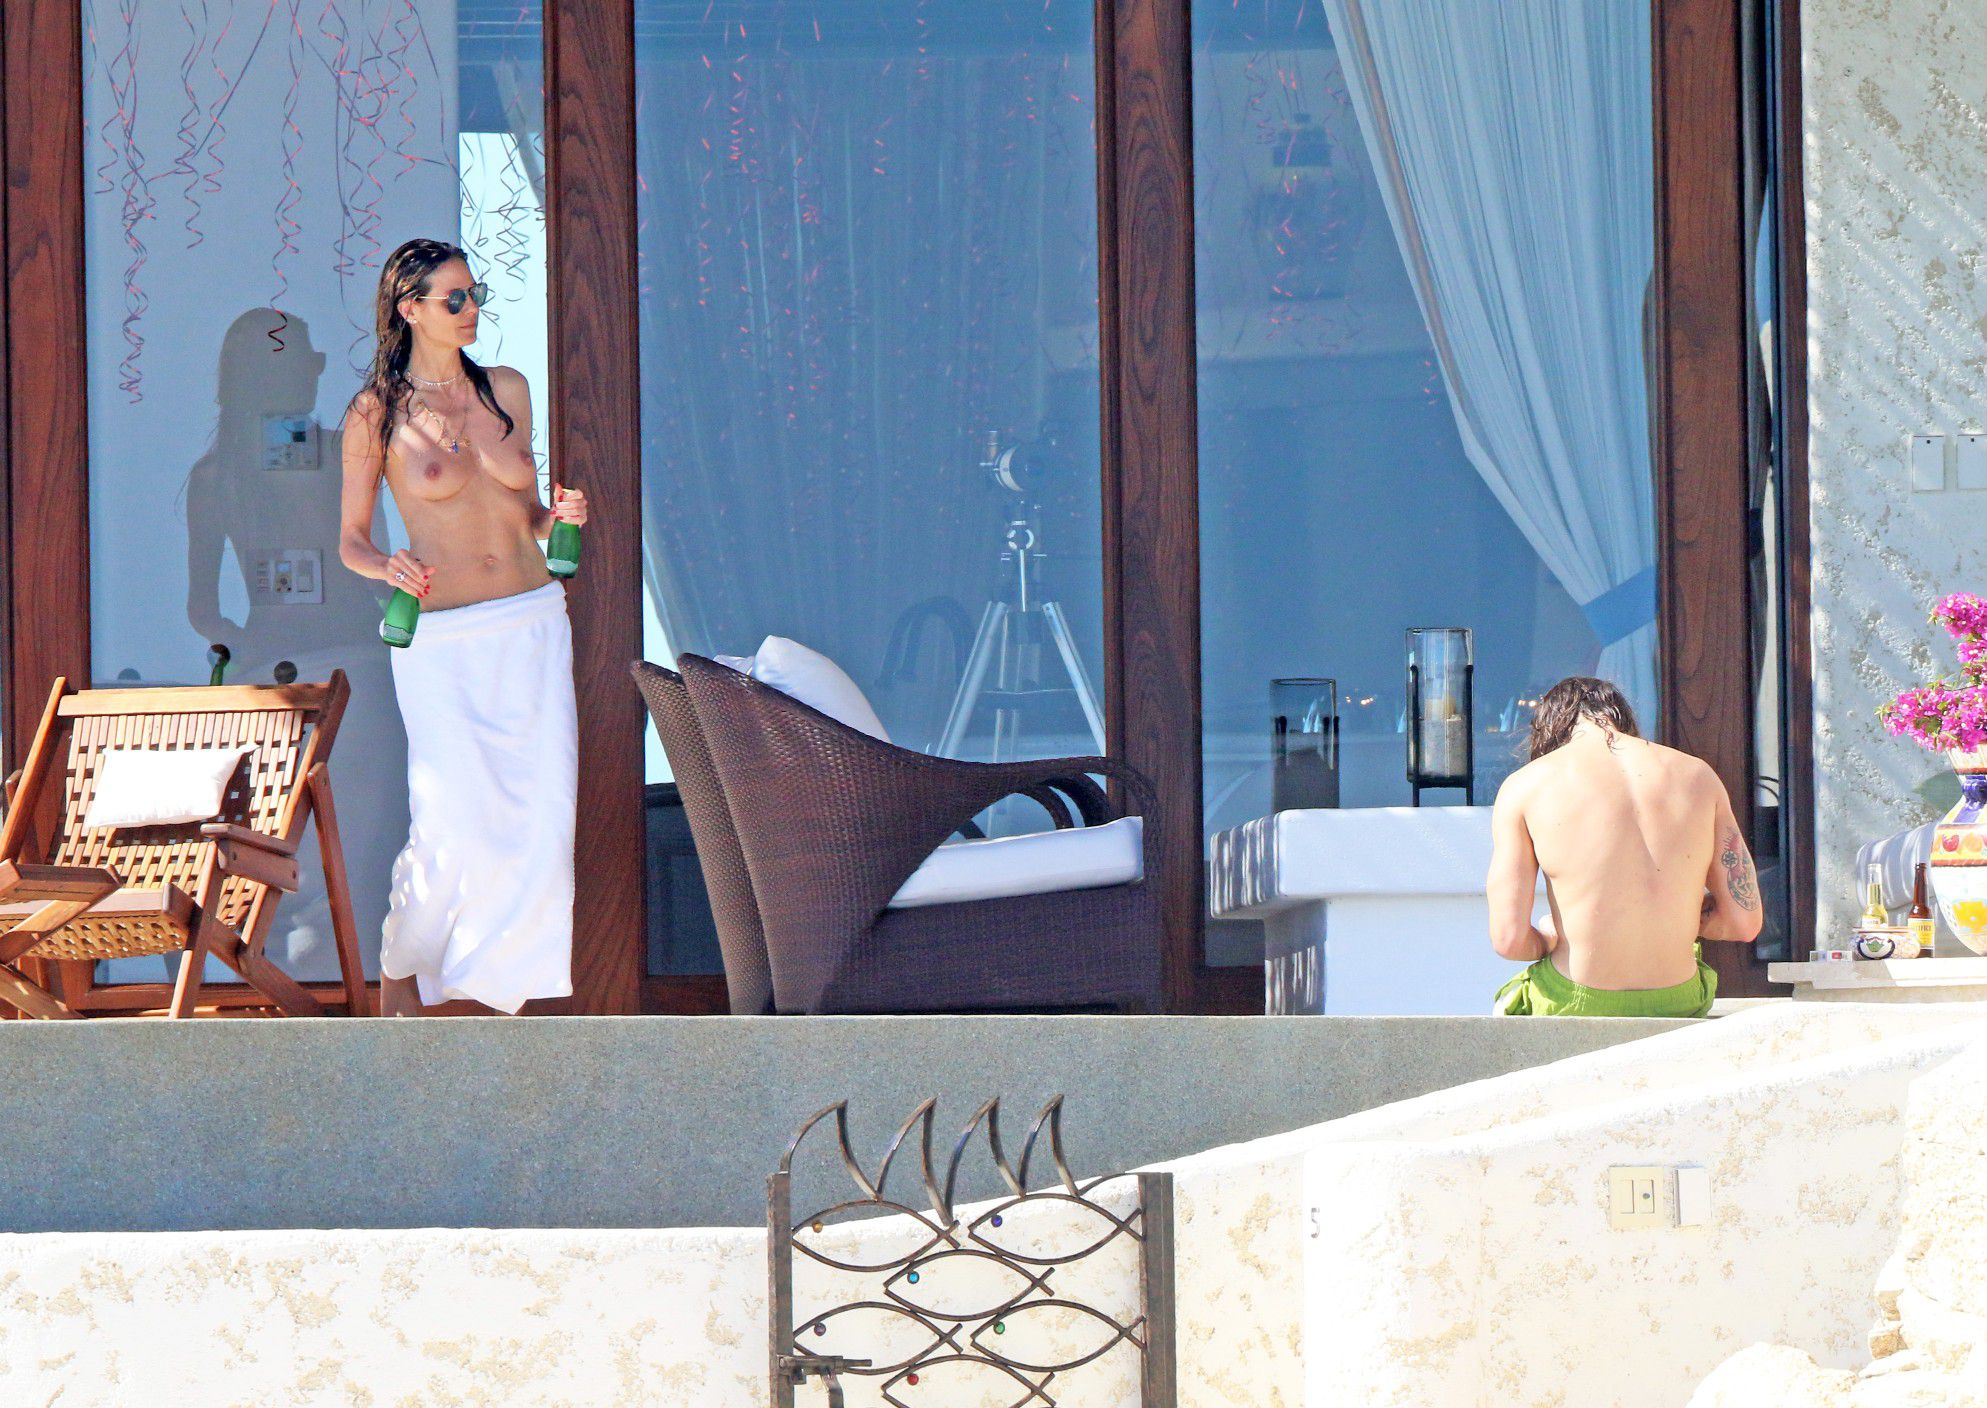 heidi-klum-topless-candids-in-cabo-san-lucas-mexico-9103